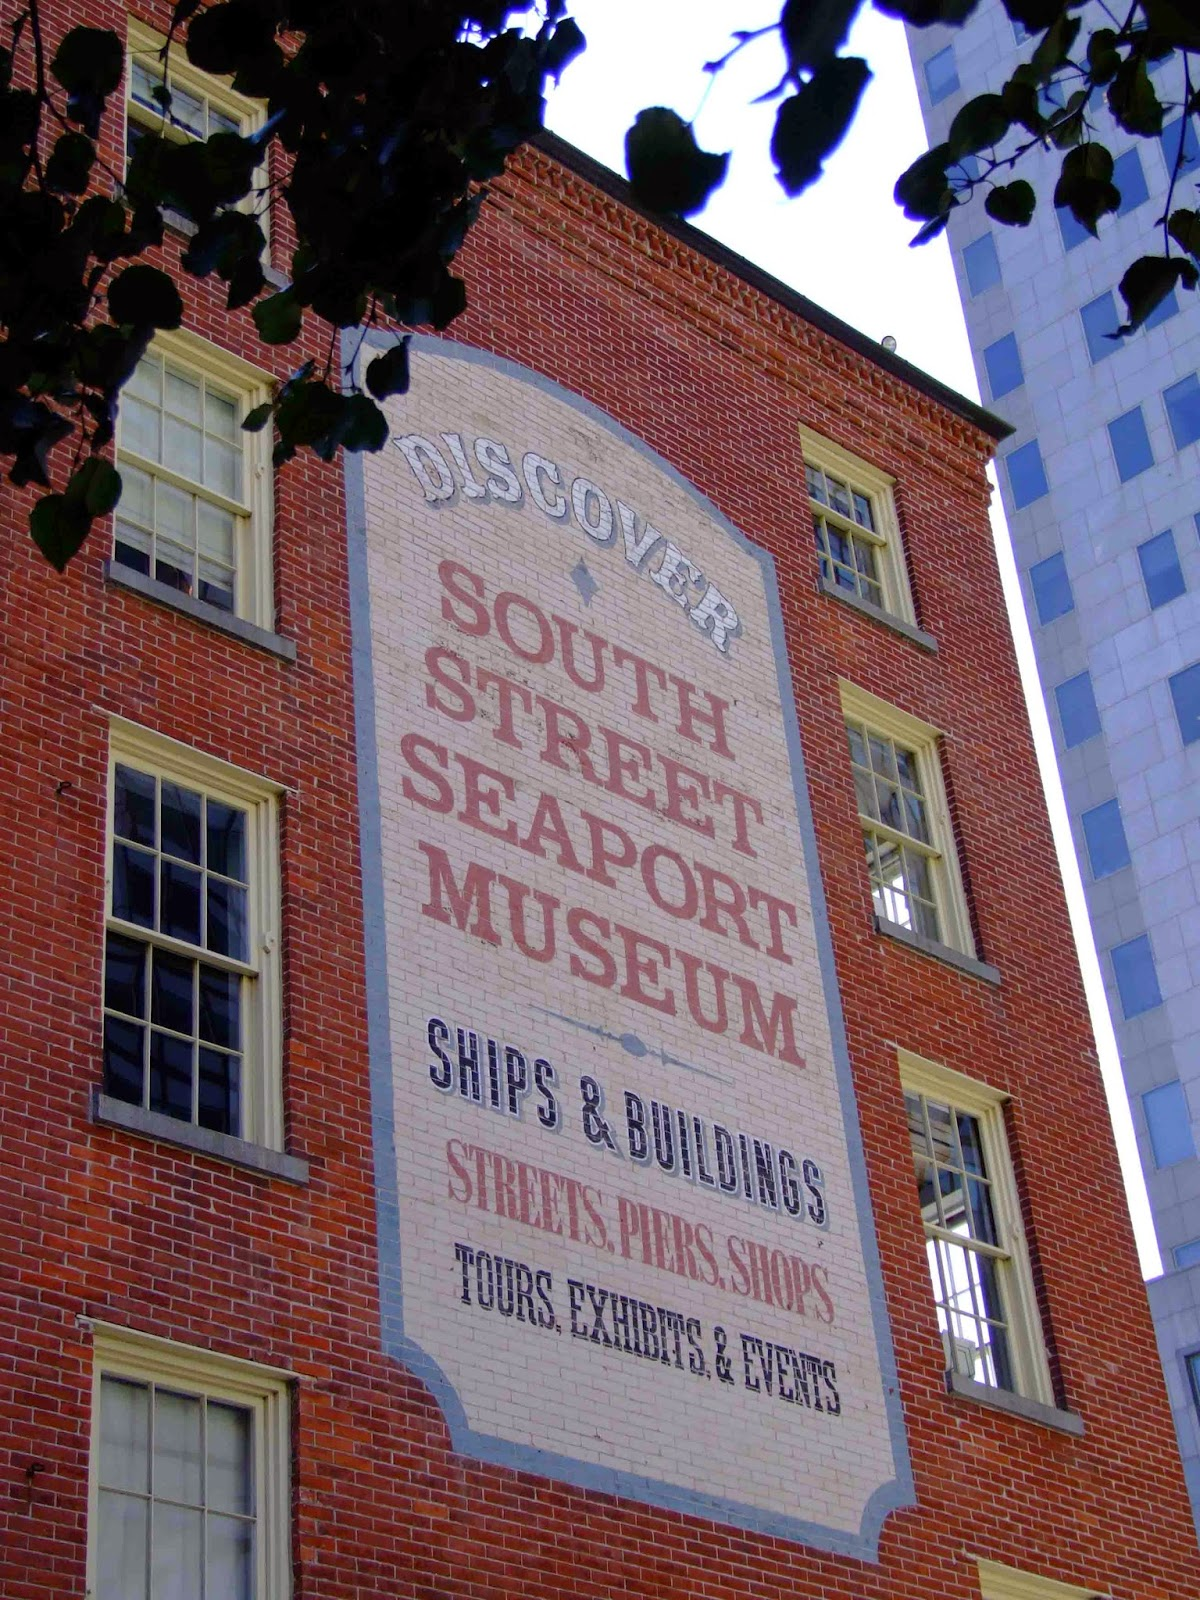 The South Street Seaport Museum